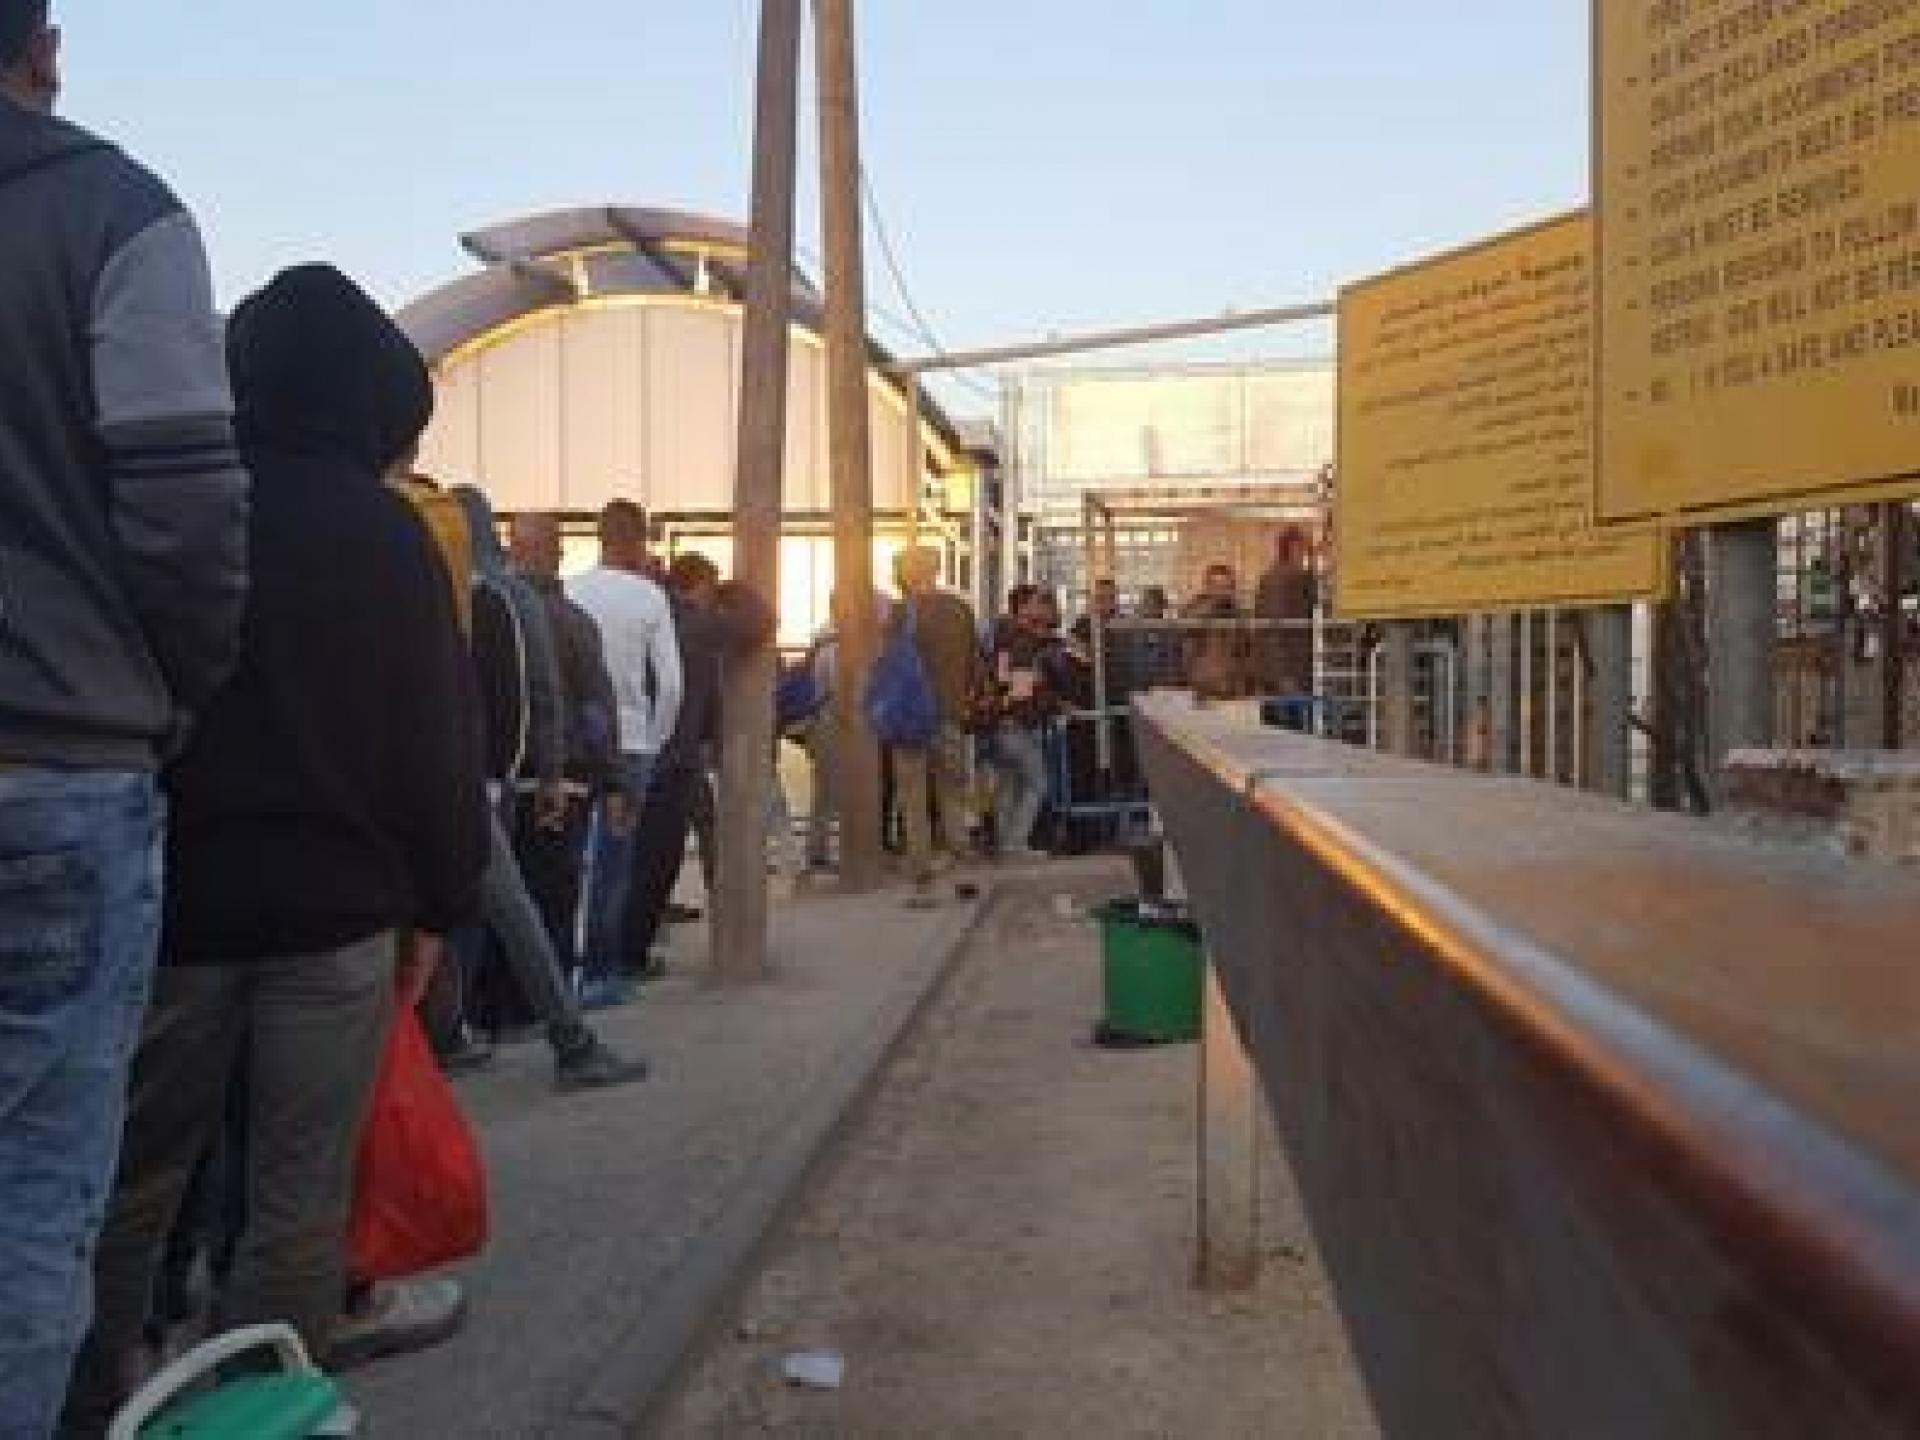 Barta'a Checkpoint – morning waiting line, standing and waiting together